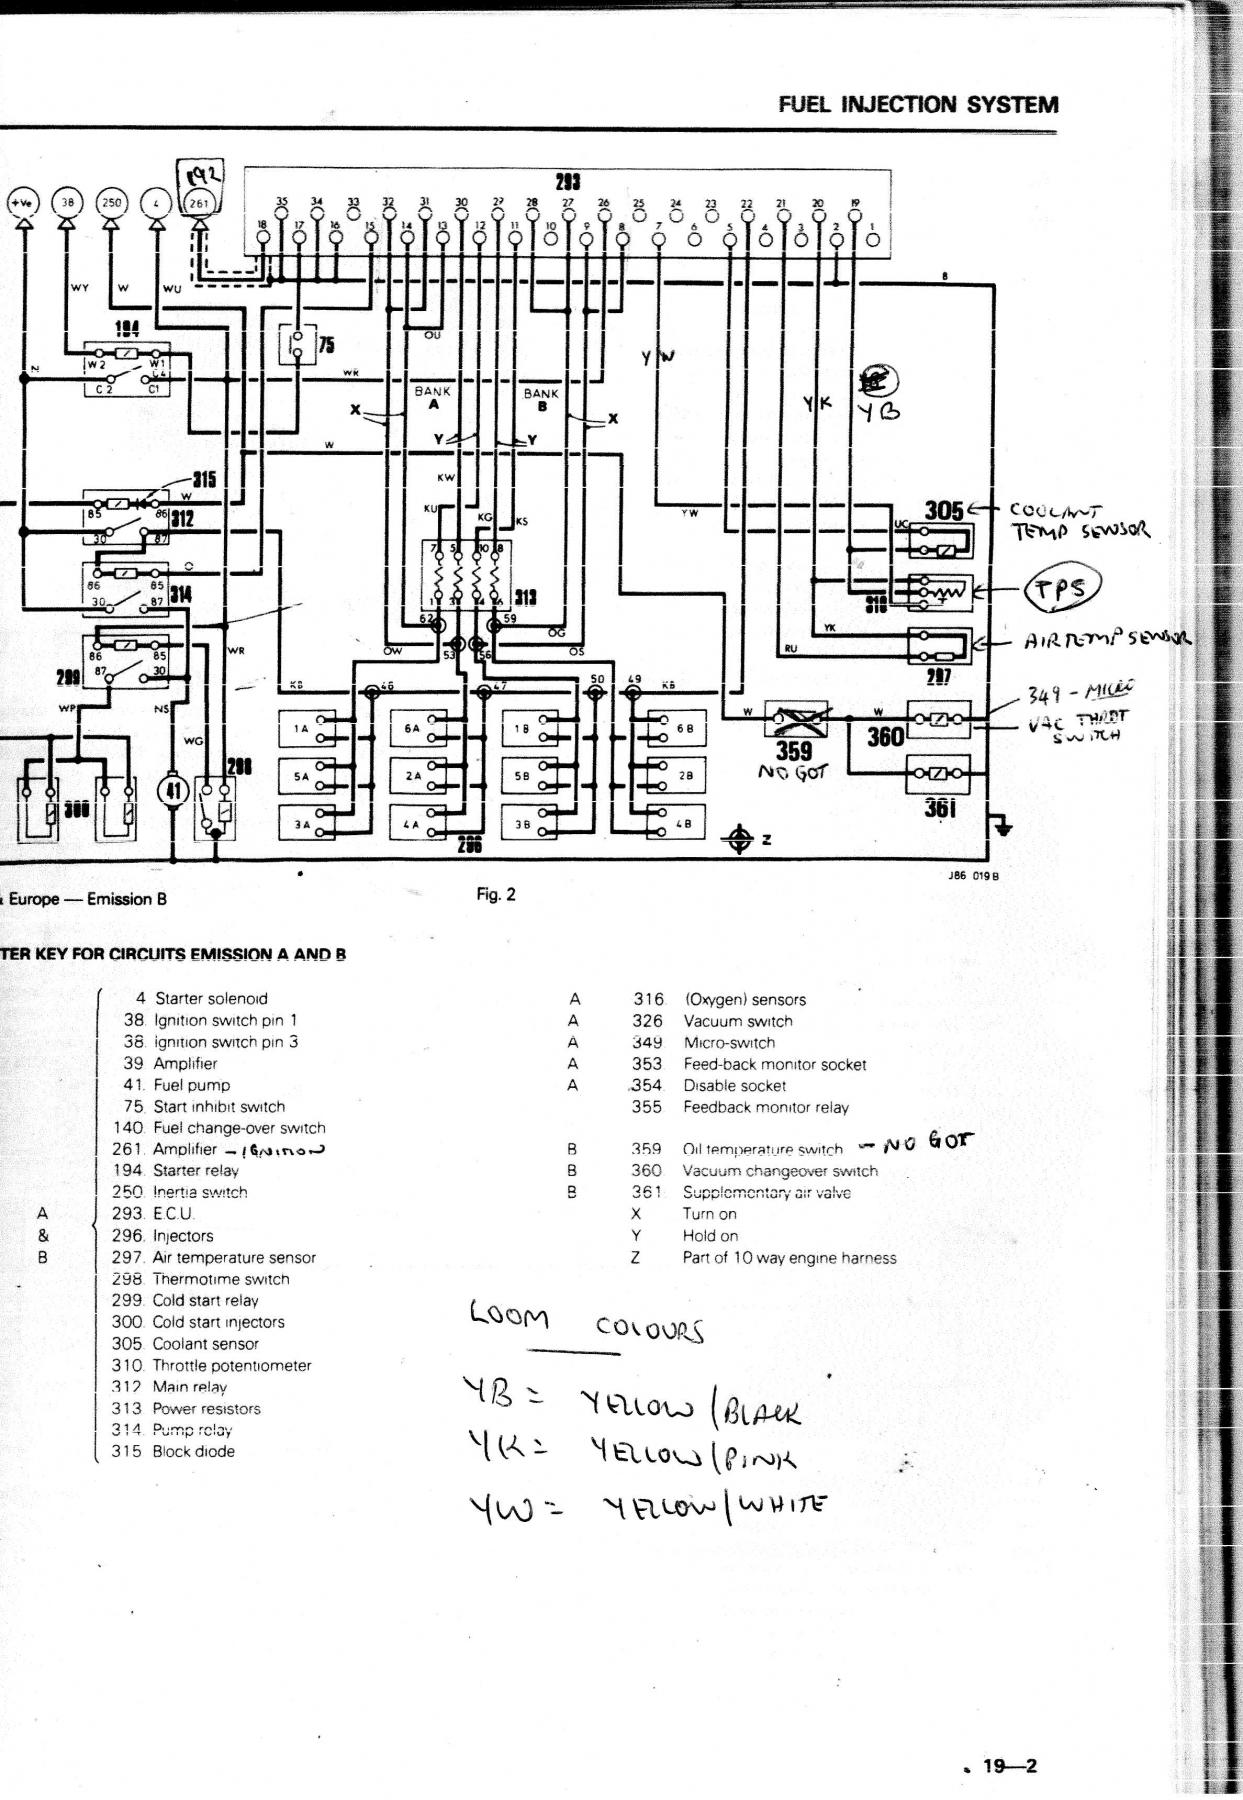 Jaguar Xj6 Fuel Pump Diagram Free Engine Image For User Manual Download